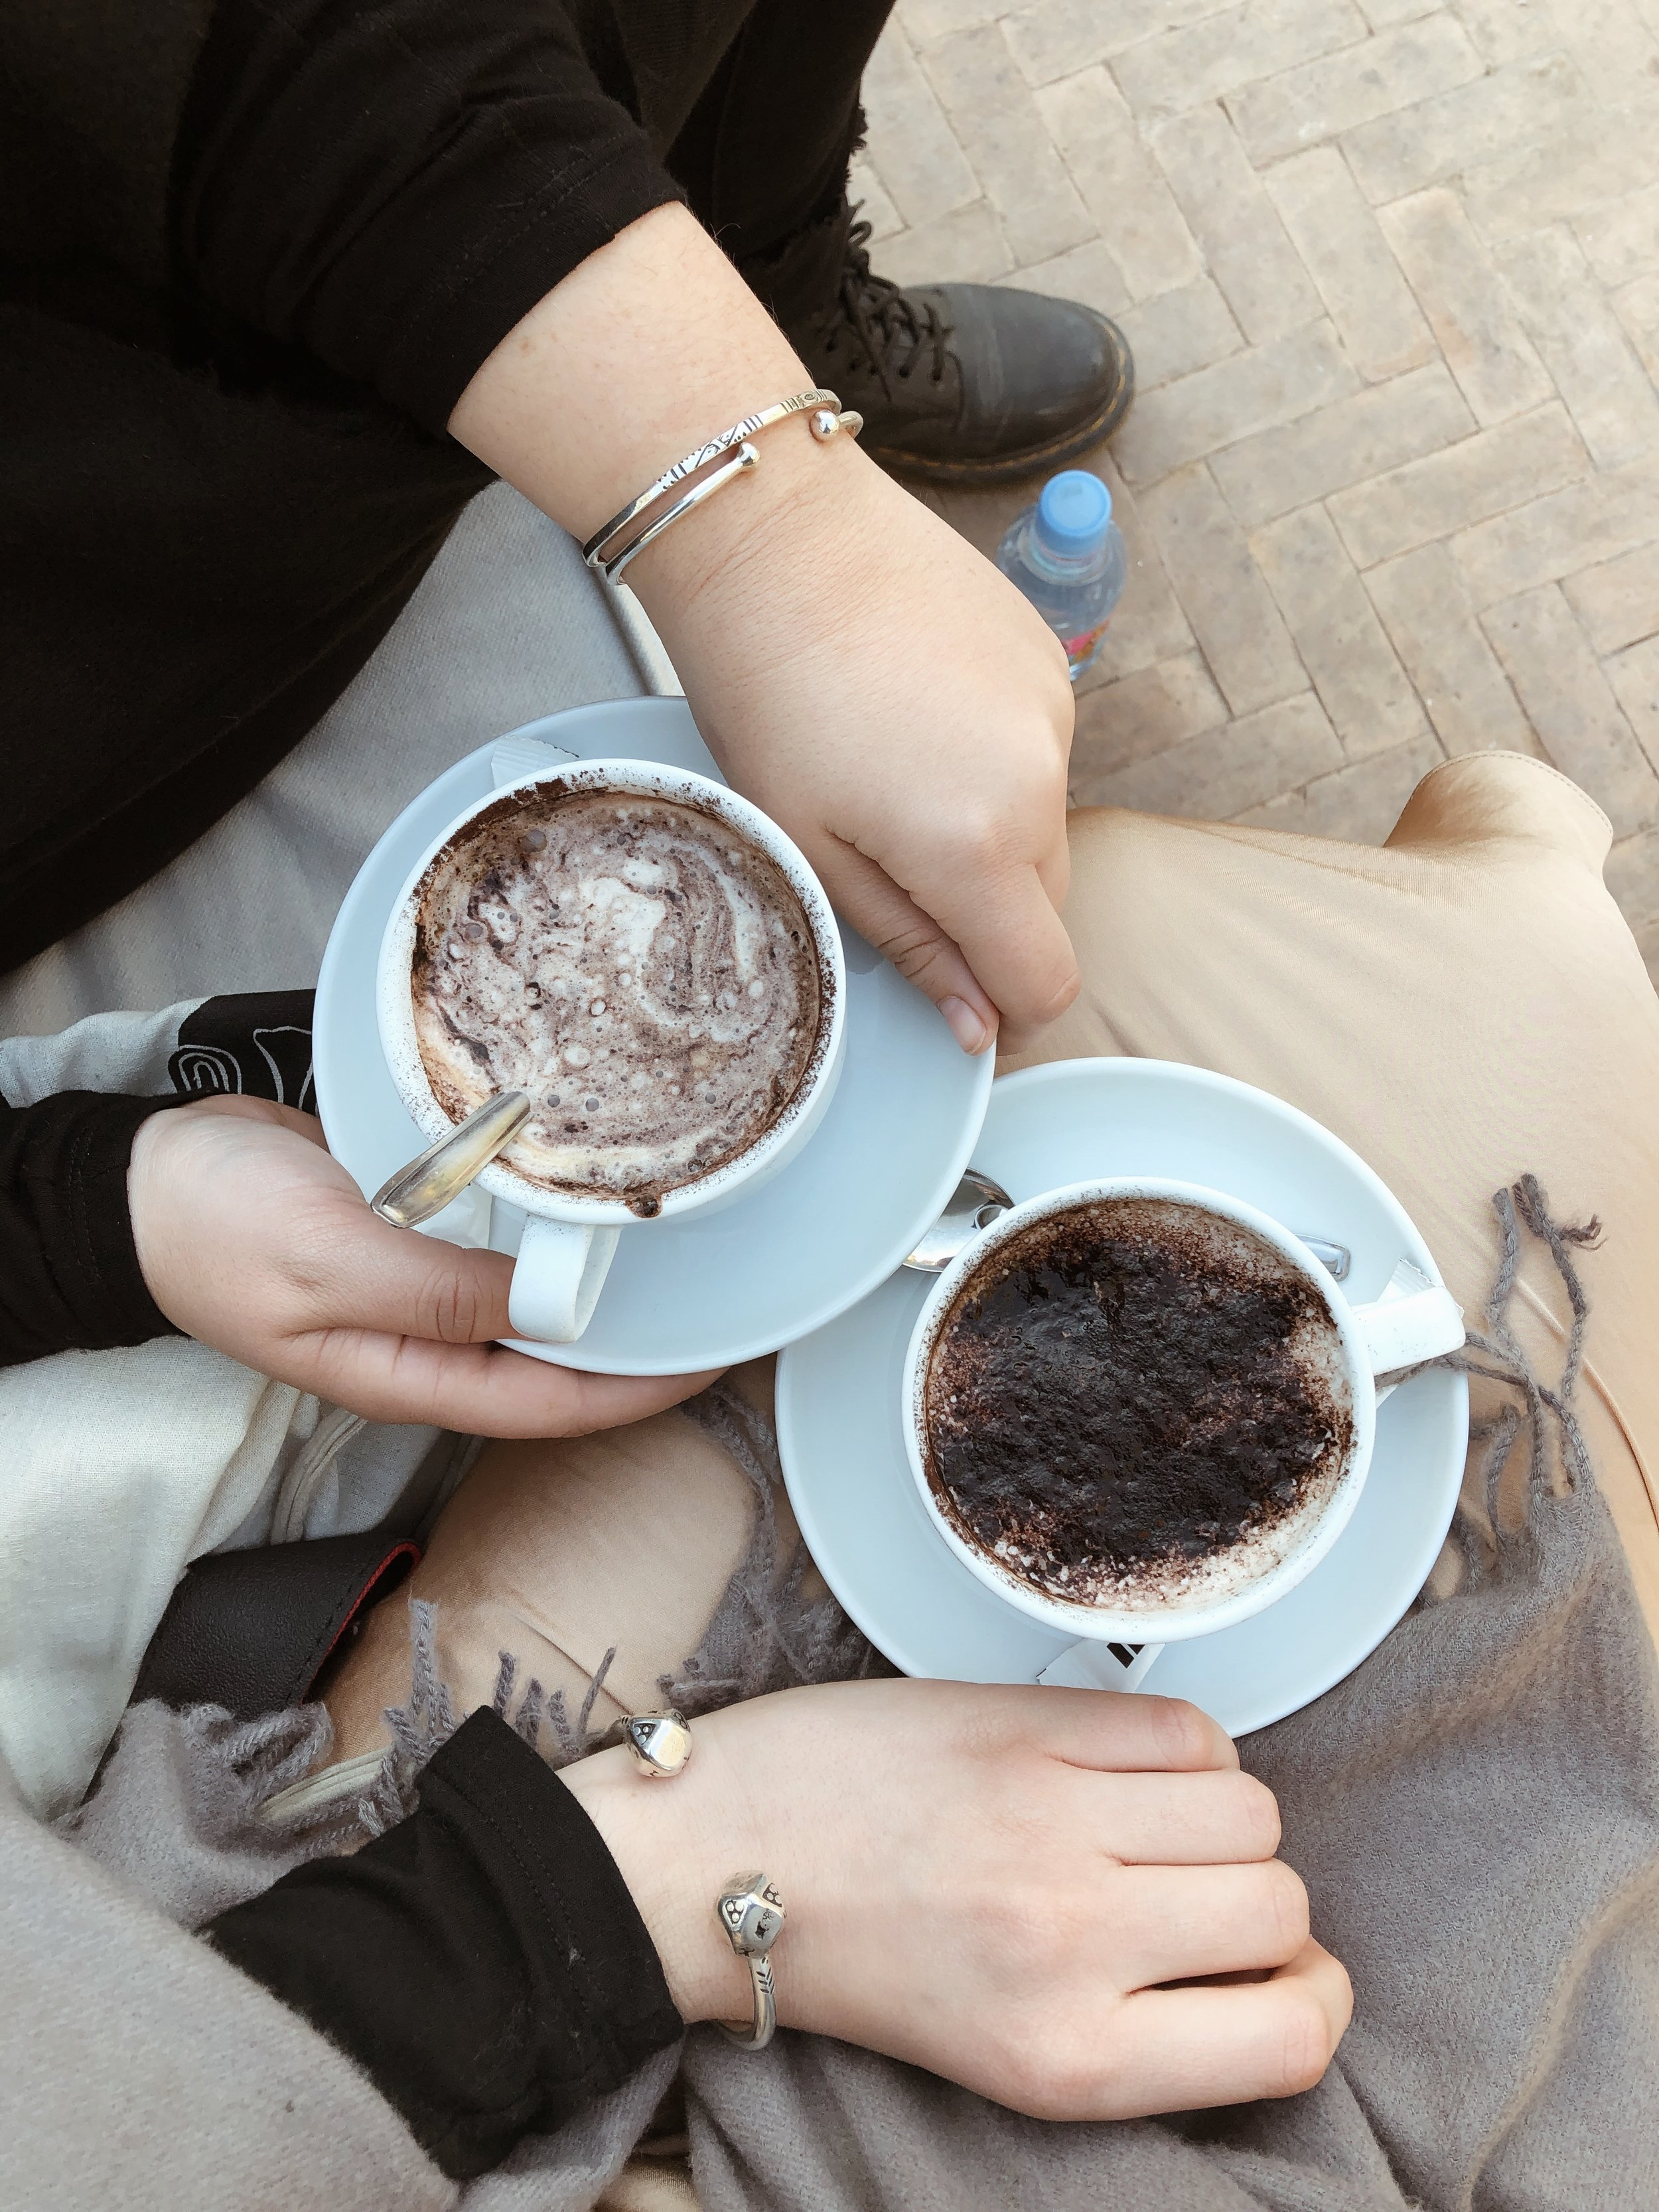 cappuccinos in hand and our new silver bangles on full display